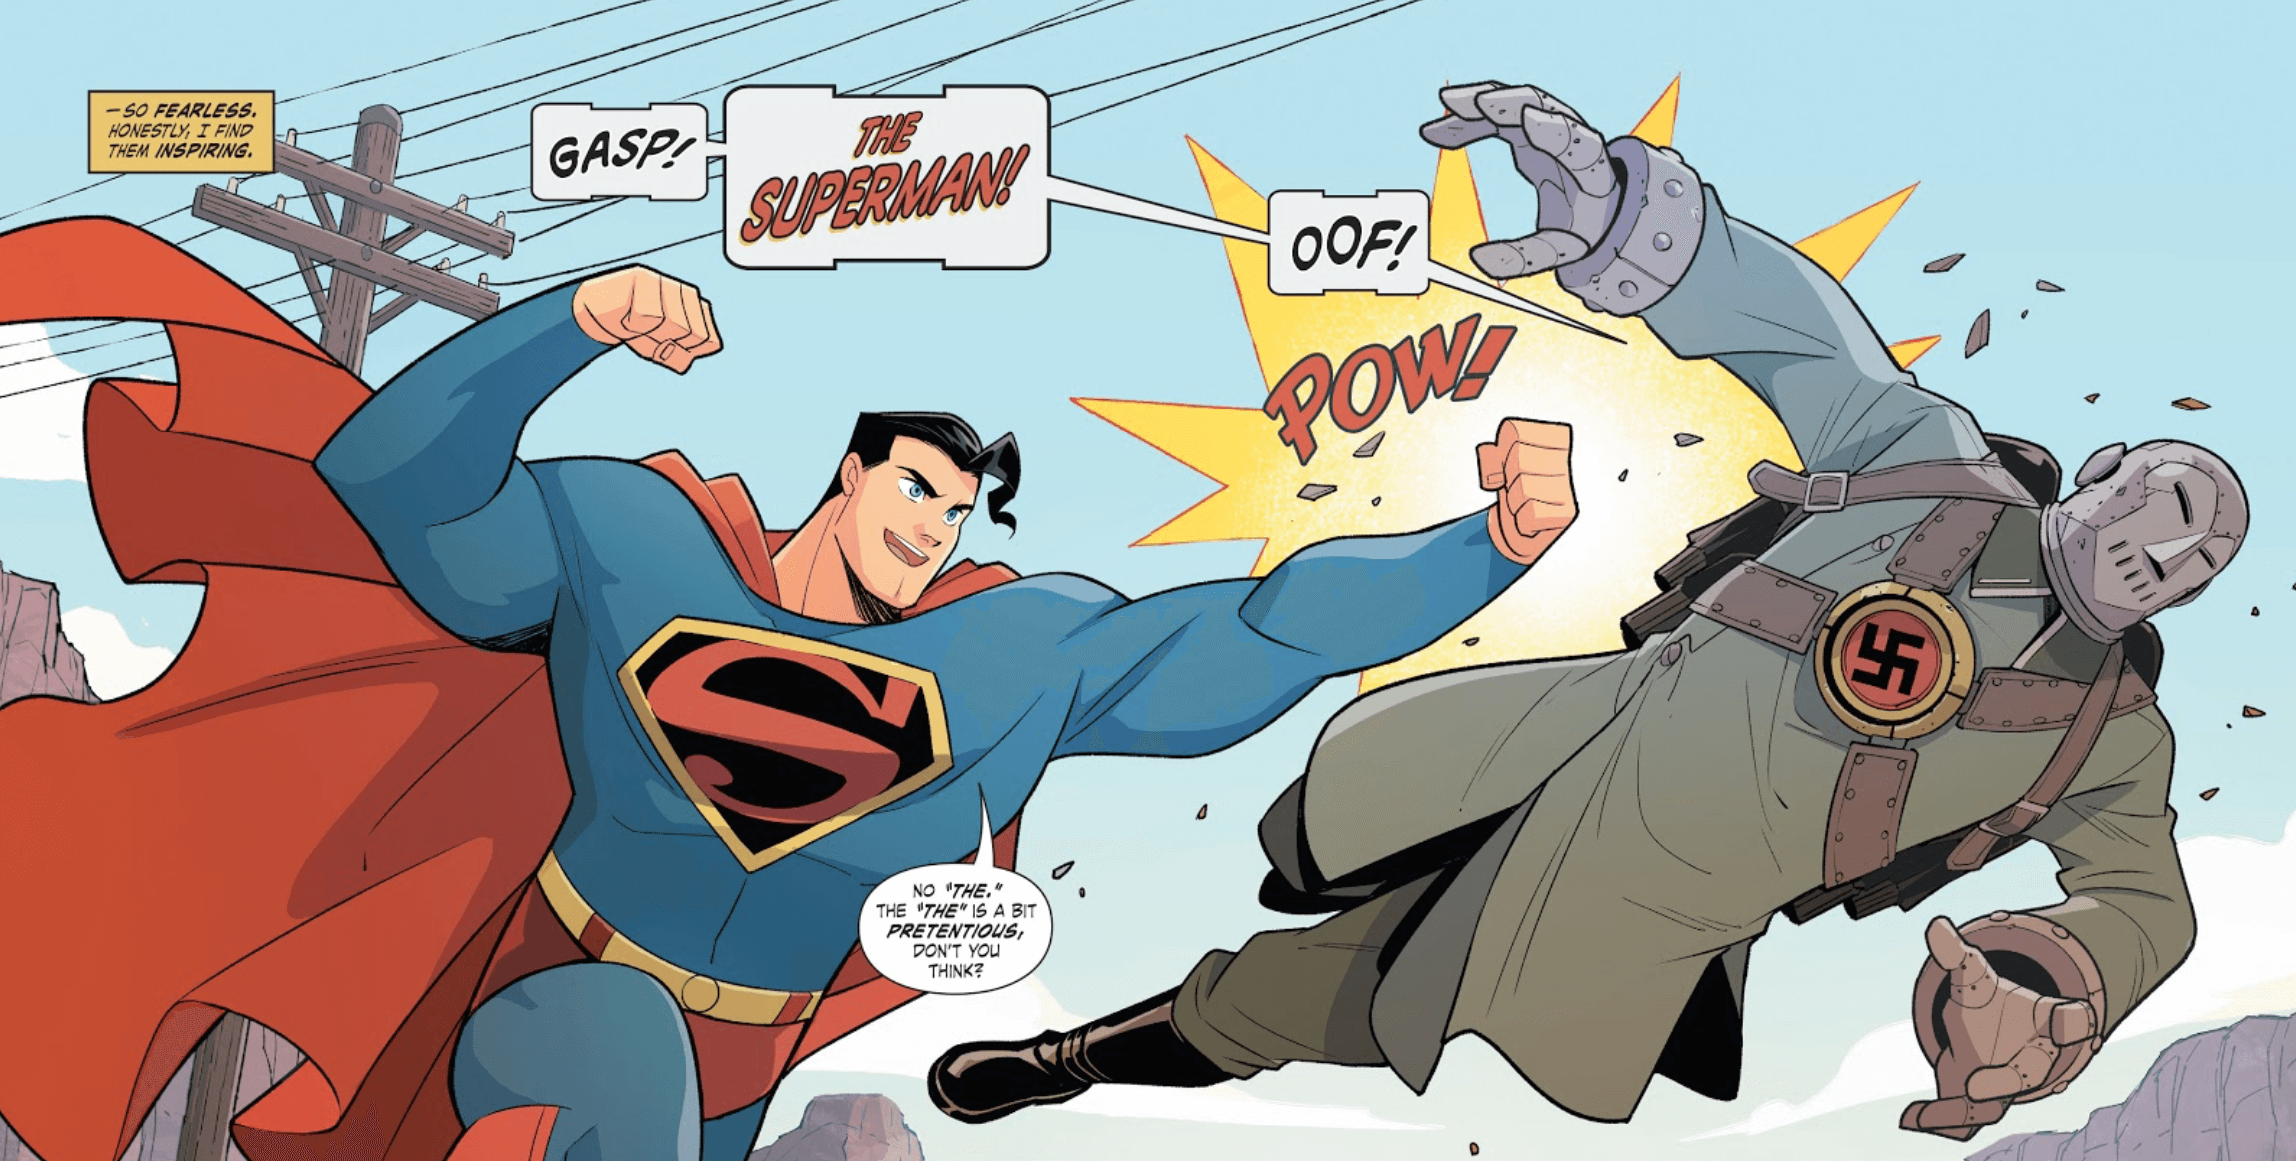 Superman punches Atom Man in Superman Smashes the Klan Part One by Gurihiru (artists), Gene Luen Yang (writer), and Janice Chiang (letterer)